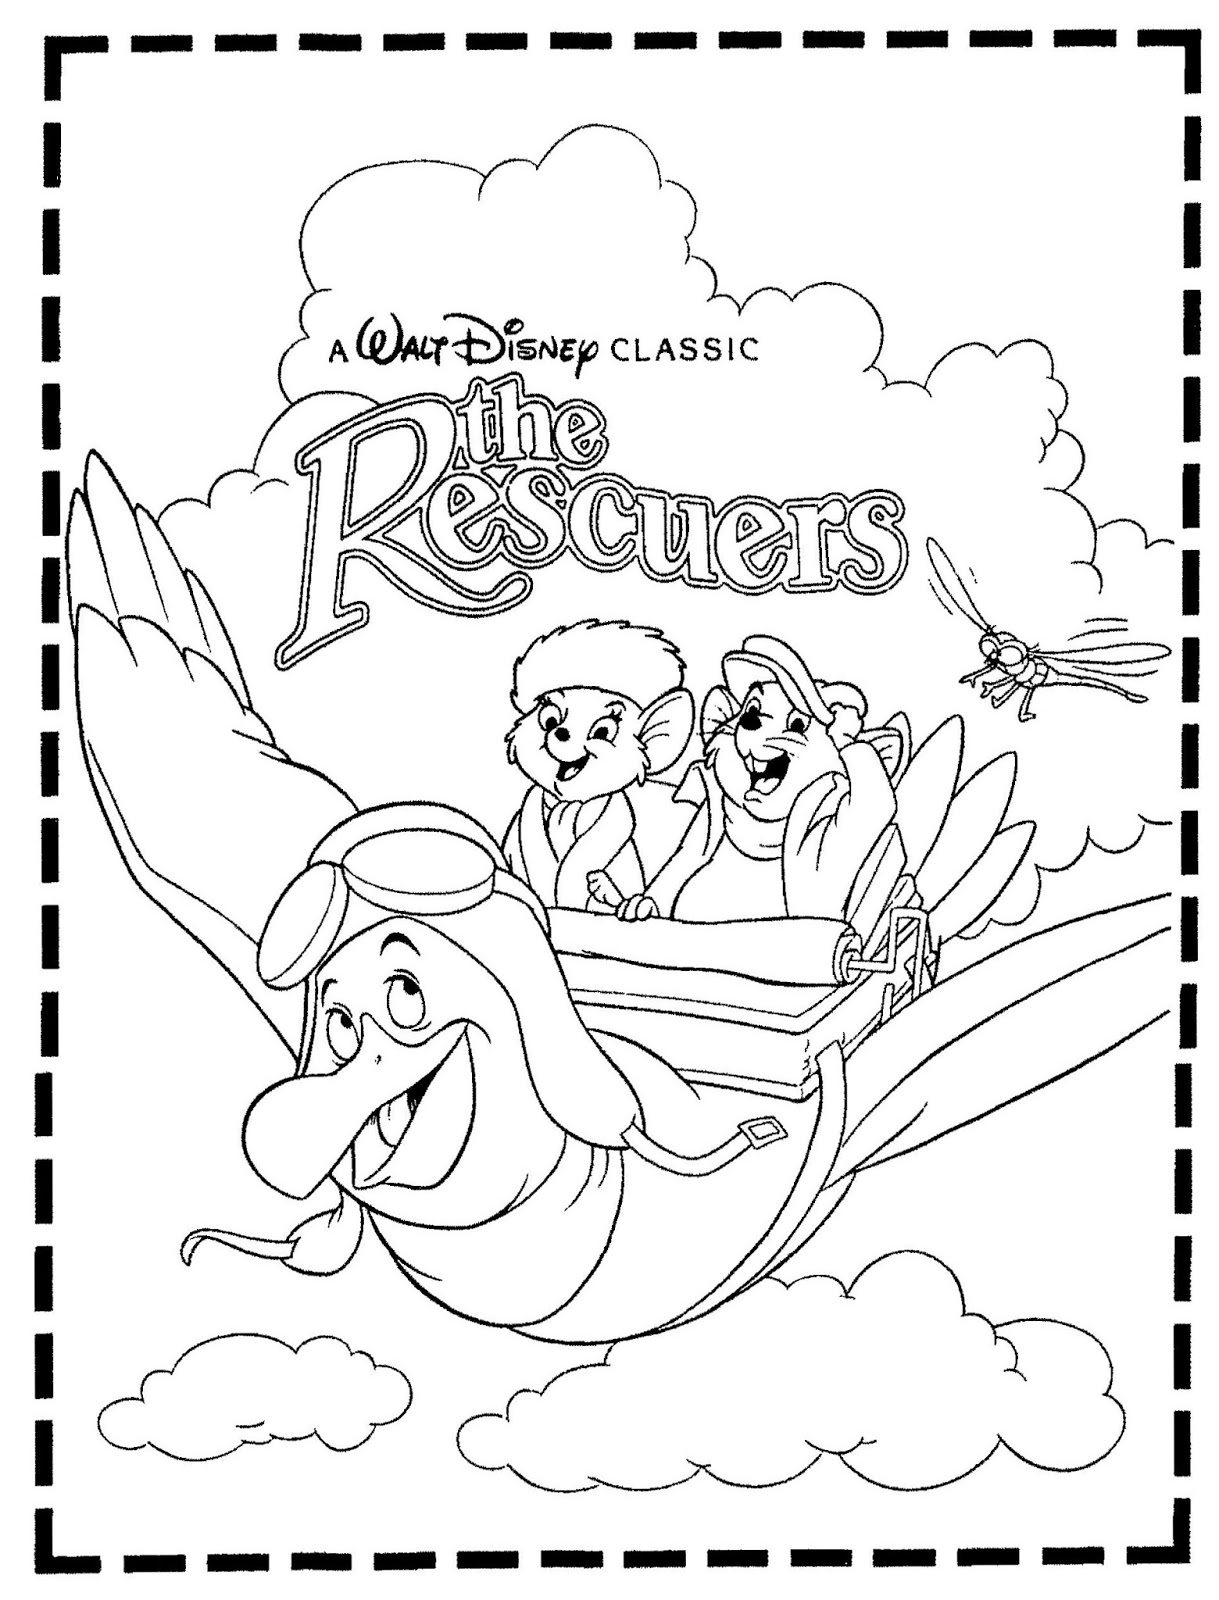 Mostly Paper Dolls Too!: THE RESCUERS Movie Coloring Contest